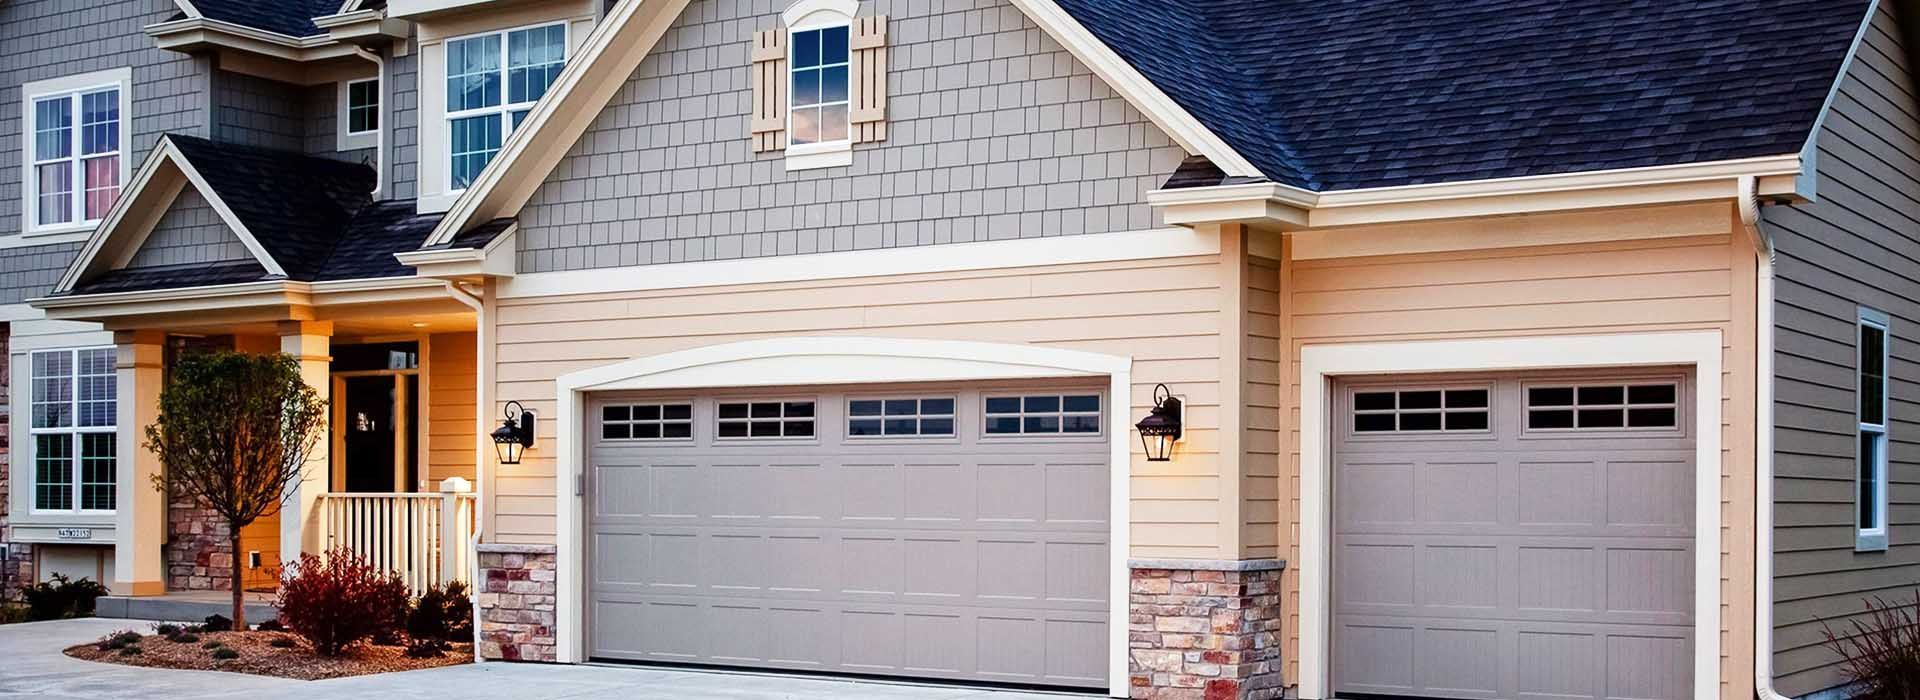 When To Call A Professional For Garage Door Installation In Okc